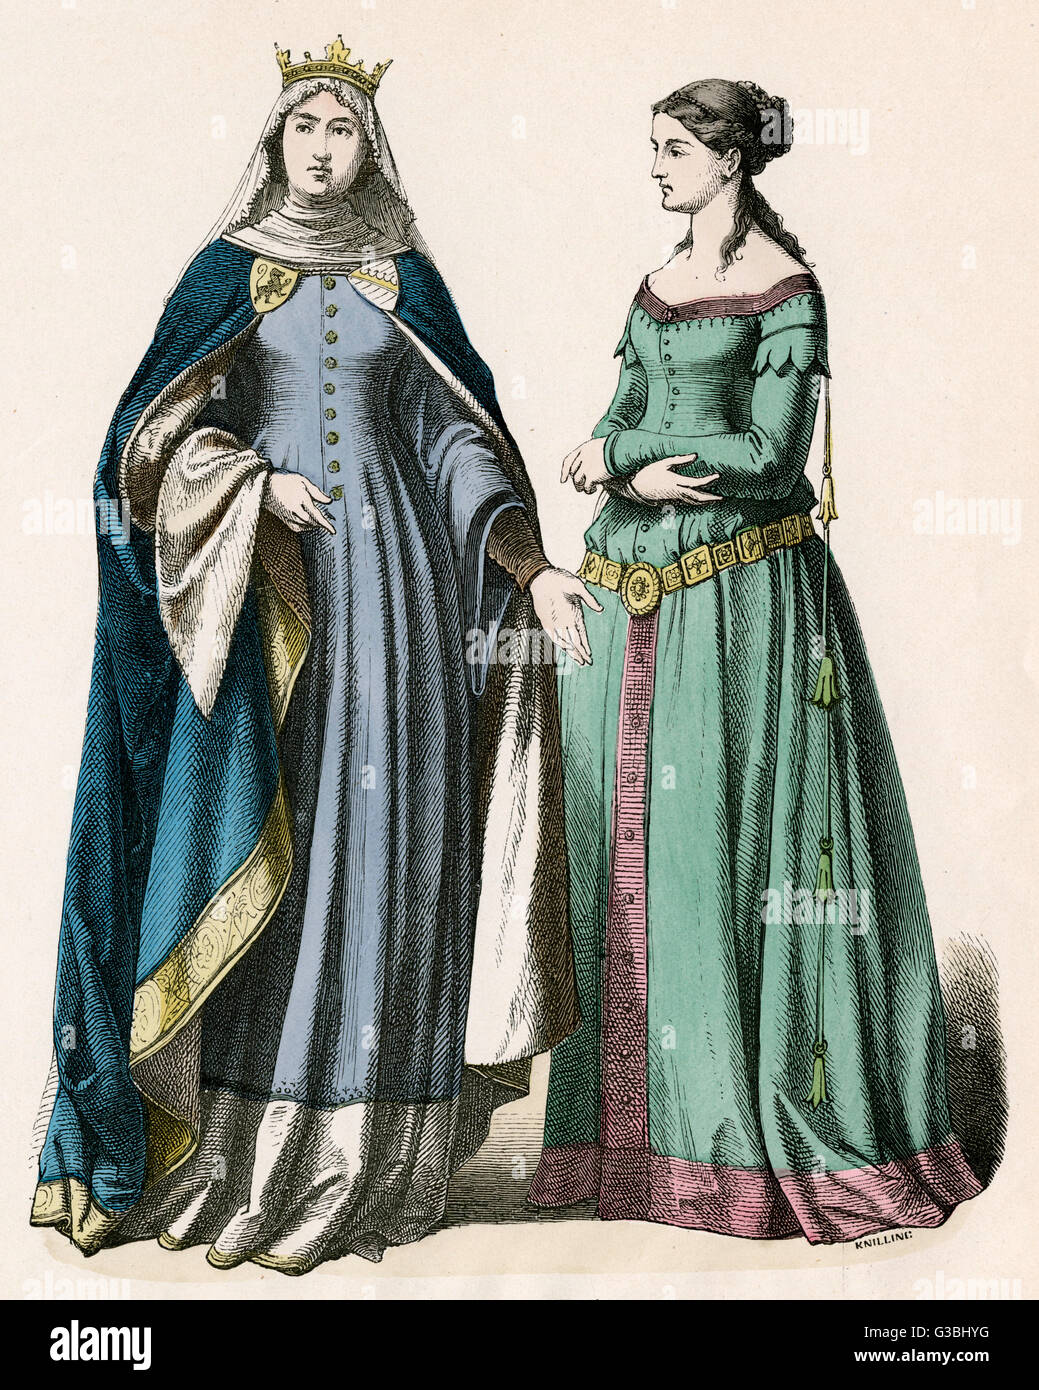 Noblewomen: fur-lined mantle  with heraldic embroidery & a  garment that resembles a  kirtle, being front - Stock Image